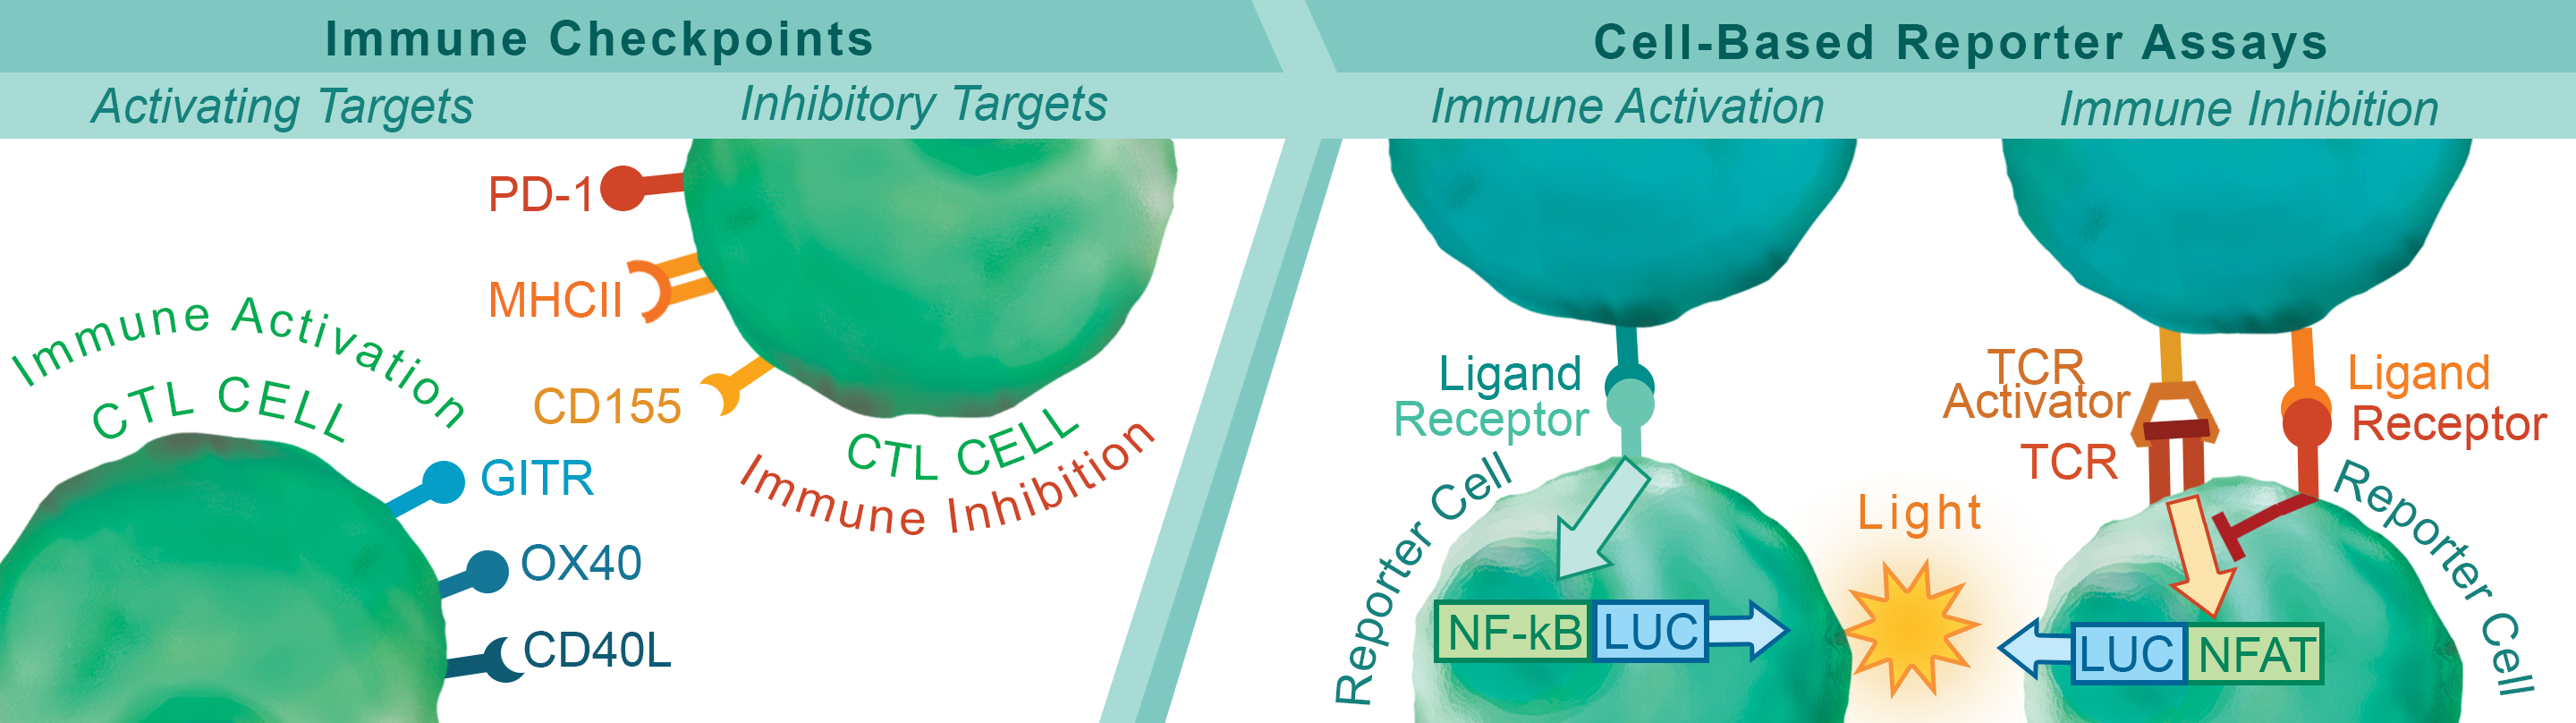 Immune Checkpoints